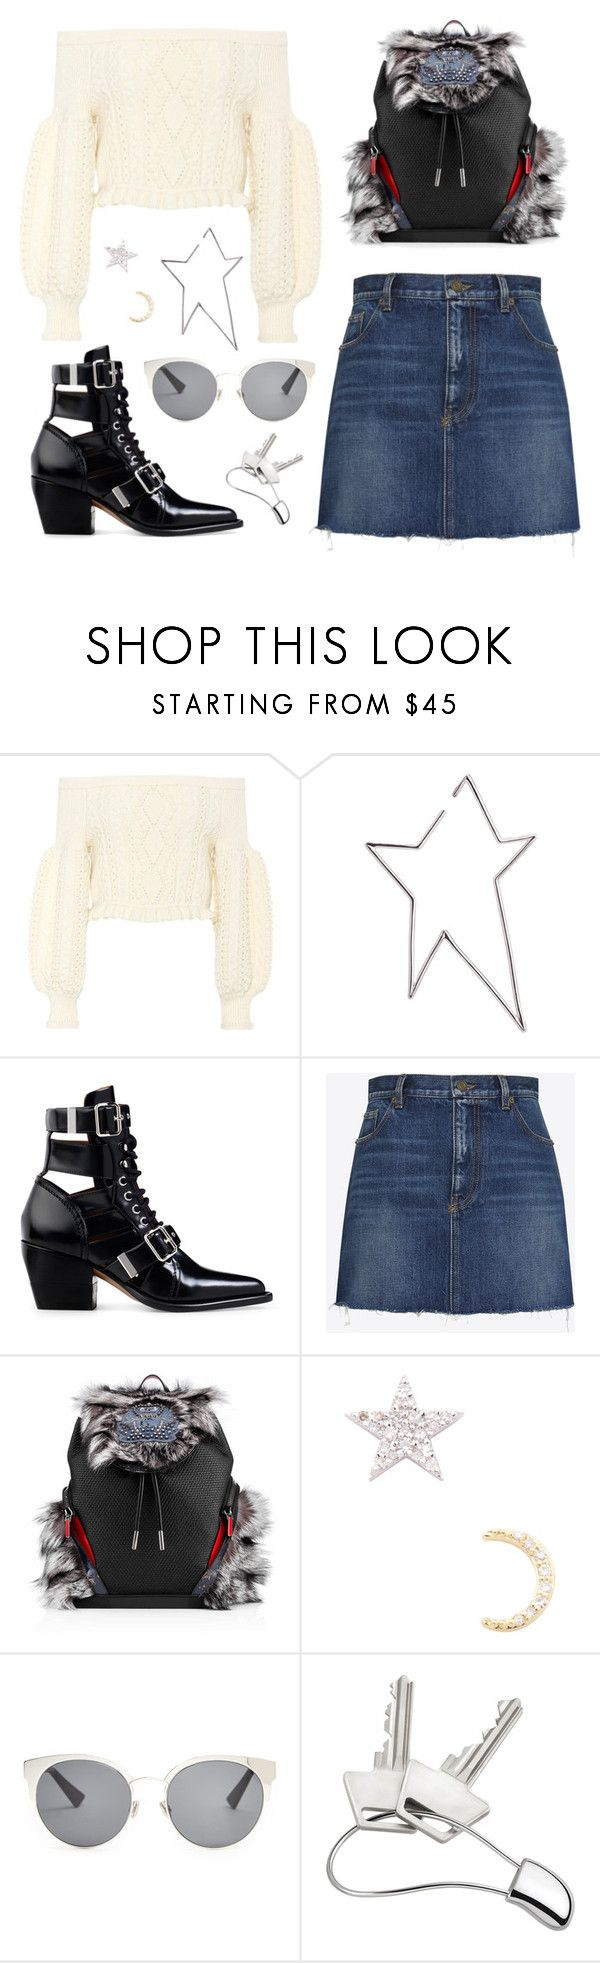 """""""Dream 198"""" by sleepyface ❤ liked on Polyvore featuring Valentino, Jennifer Fisher, Chloé, Yves Saint Laurent, Christian Louboutin, Christian Dior and Georg Jensen"""